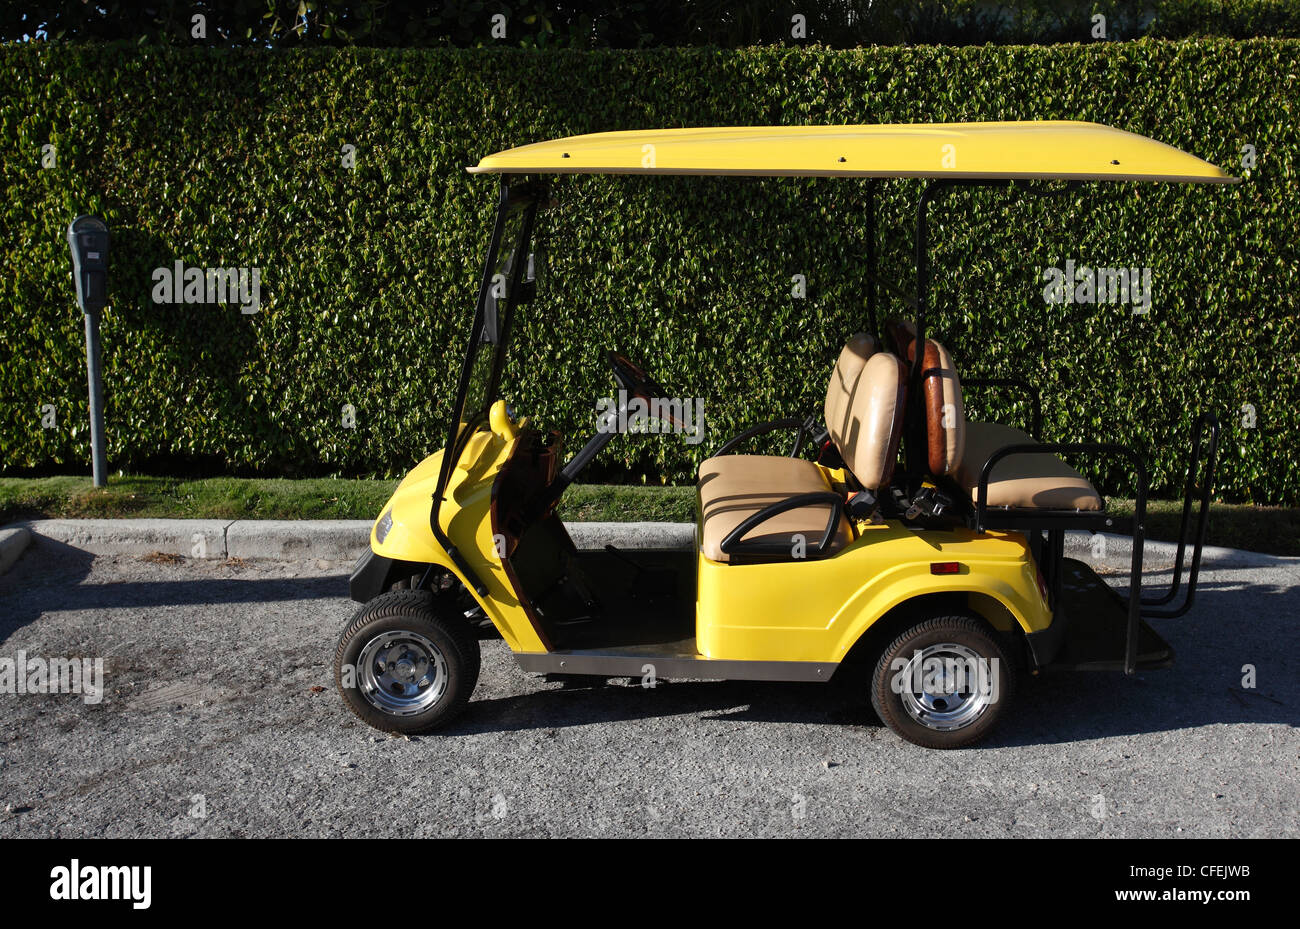 Golf cart parked at a parking meter in Naples, Florida - Stock Image